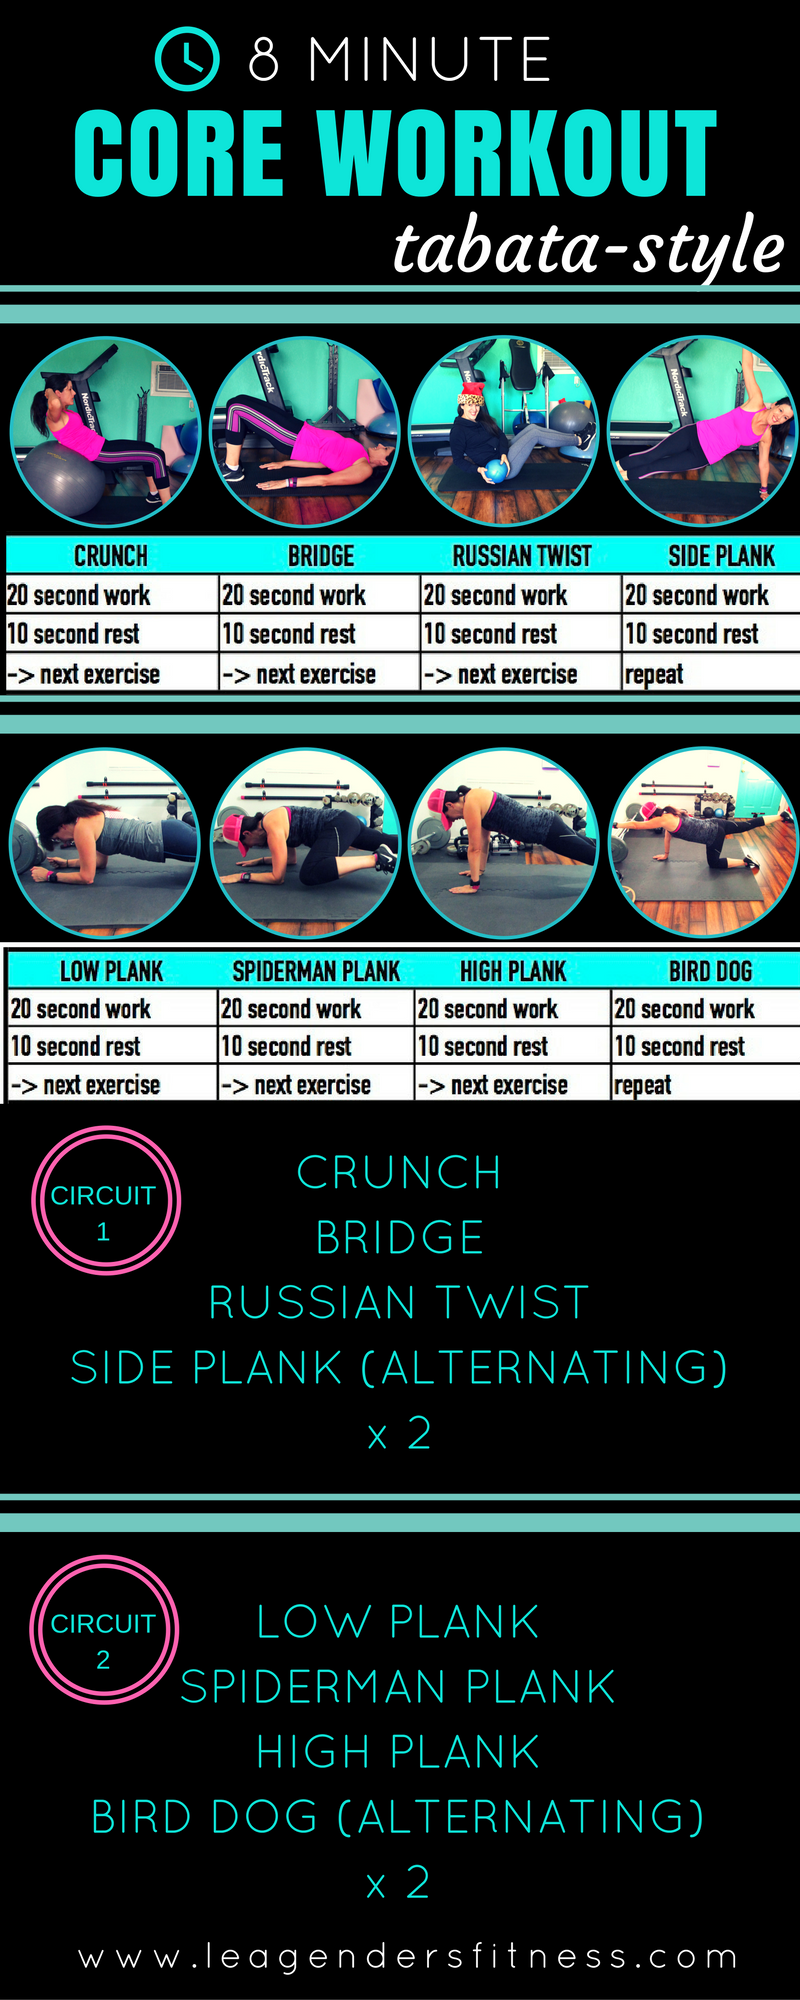 8 Minute Tabata Style Core Workout Lea Genders Fitness Workouts Timers For Hiit And Circuit Training Are Included